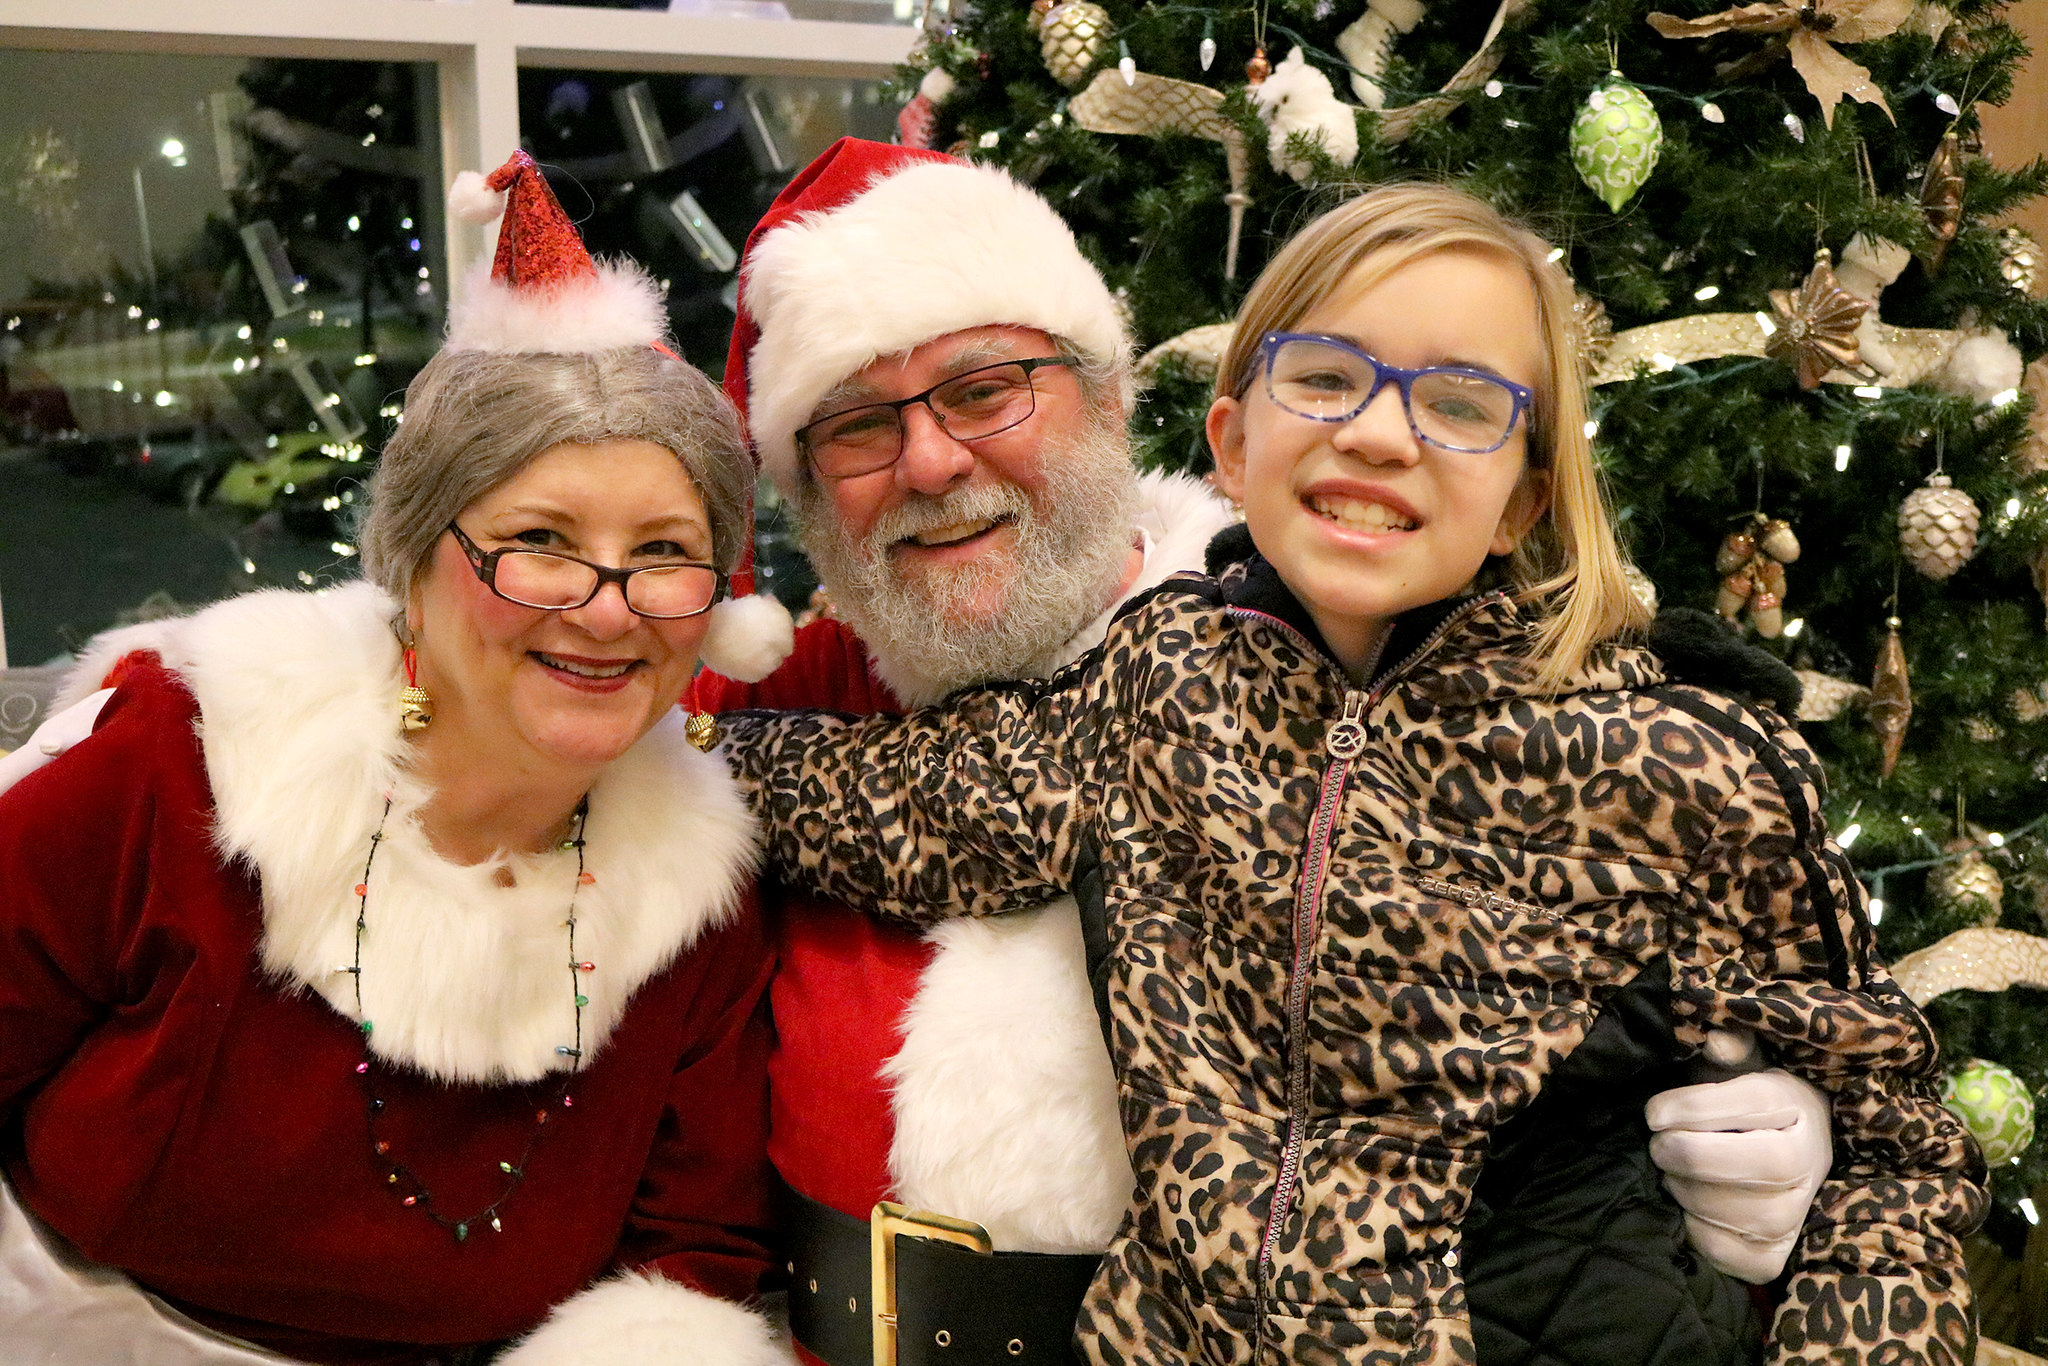 Madison with Santa and Mrs. Claus at the holidays